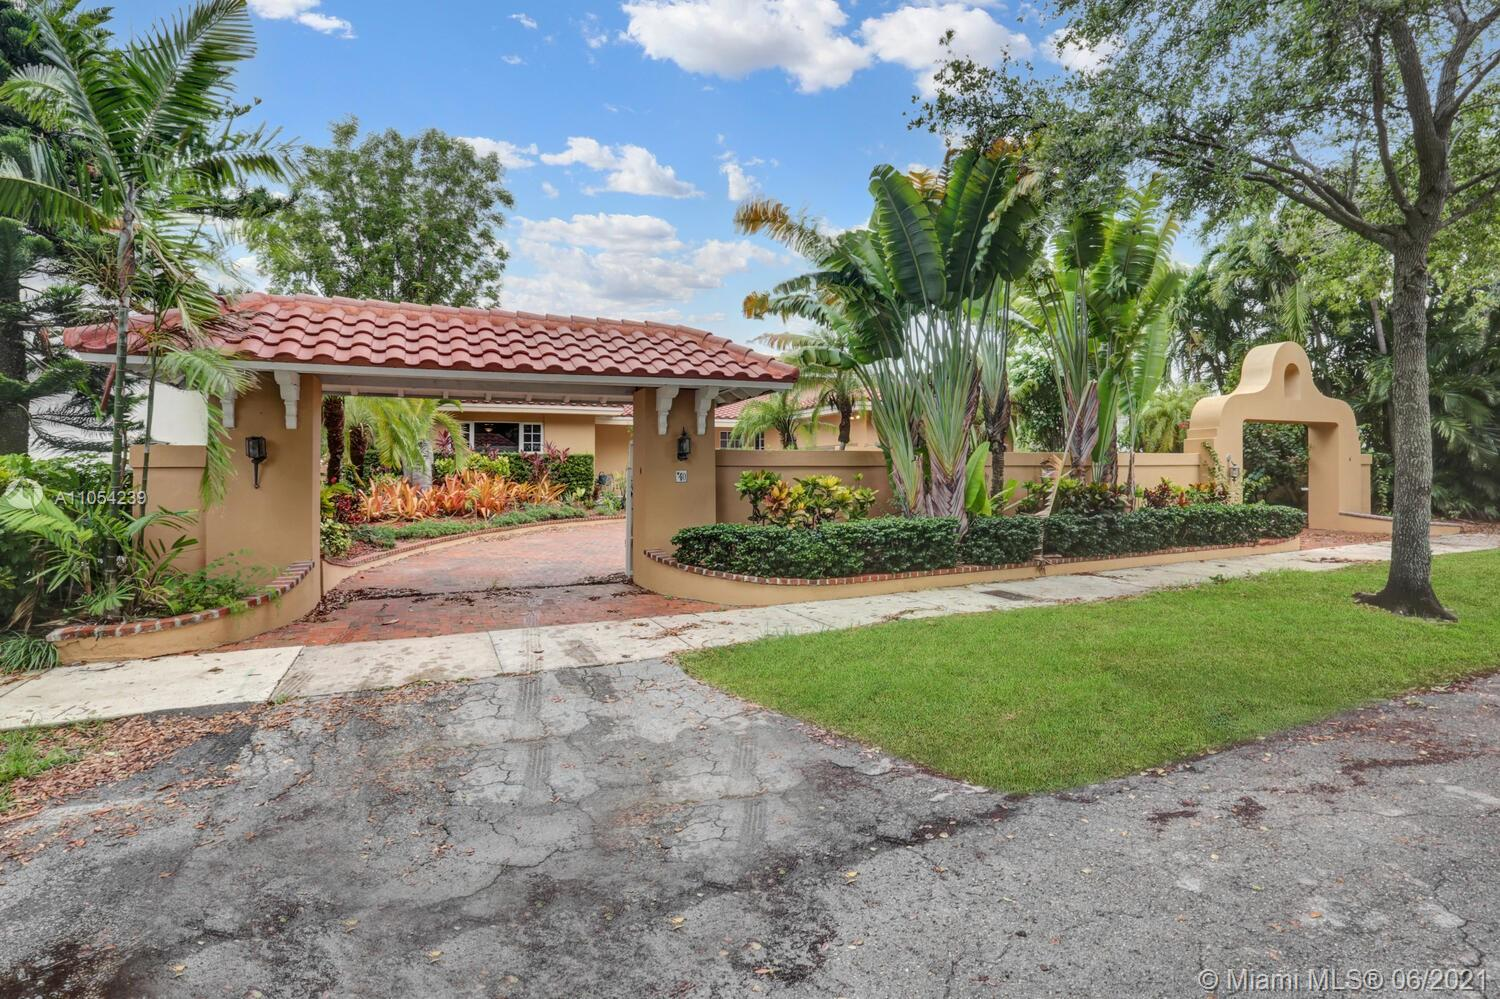 This large home is behind a high wall and has impact windows, 2 garage spaces and a covered terrace with an off the pool bar. The circular driveway has 2 electric gates at each end. This large home offers 24-hour security and is not located in a flood zone. An open floor plan that allows you to see the huge backyard. (14,321 sq.ft. lot) and the pool as soon as you enter. High ceilings with a very comfortable and enjoyable living room and family room. A huge master bedroom with its own dressing room and bathroom.